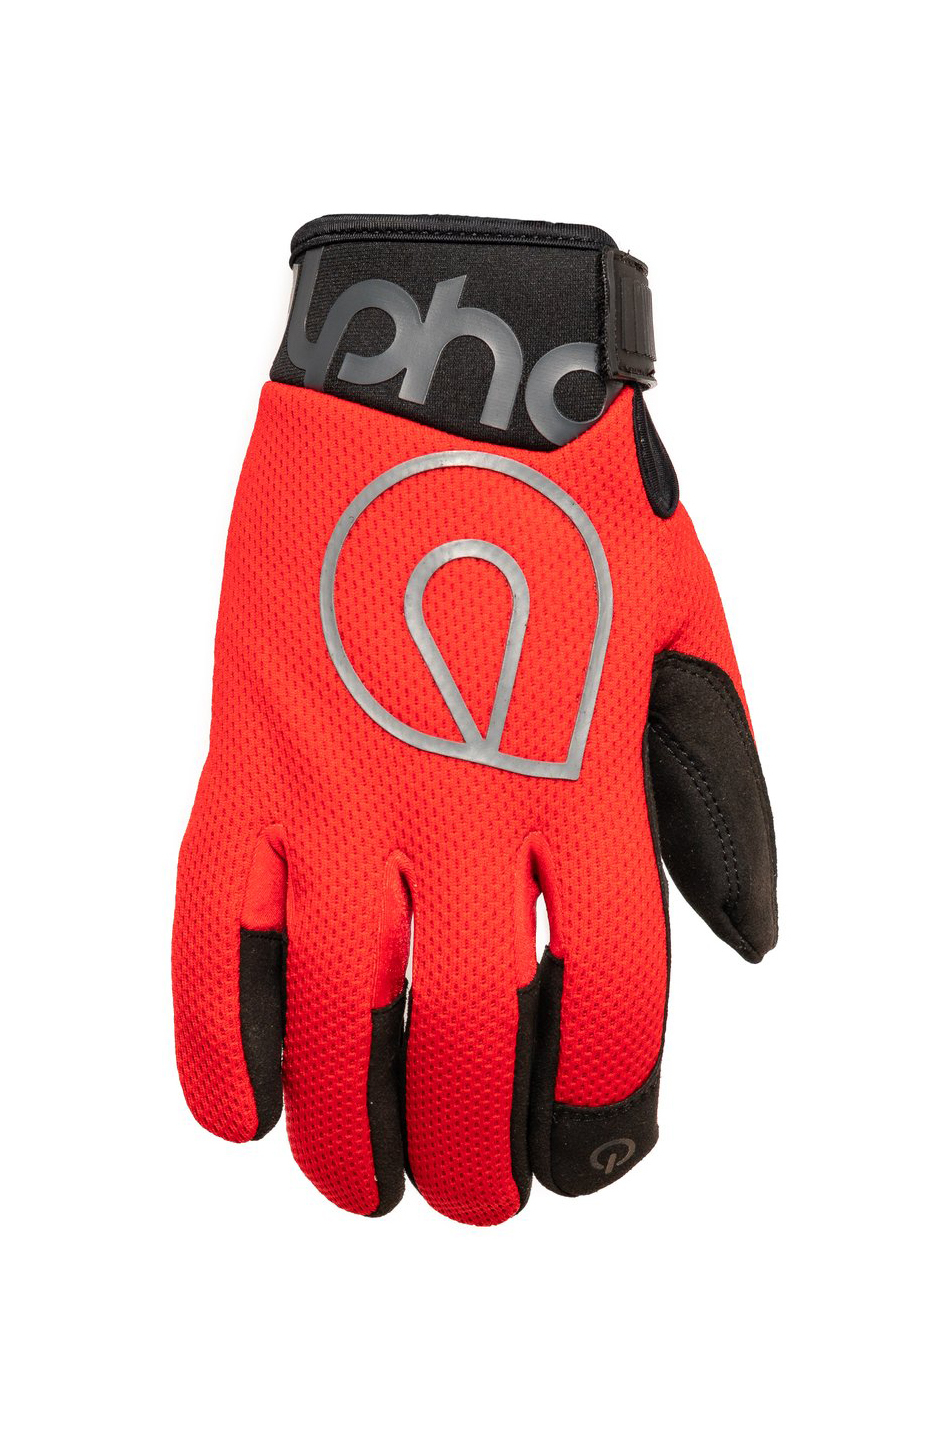 Alpha Gloves AG02-02-M Gloves, Shop, The Standard, Hook and Loop Closure, Neoprene Cuff, Mesh Top, Touch Screen Capable, Synthetic Leather Palm, Red, Medium, Pair